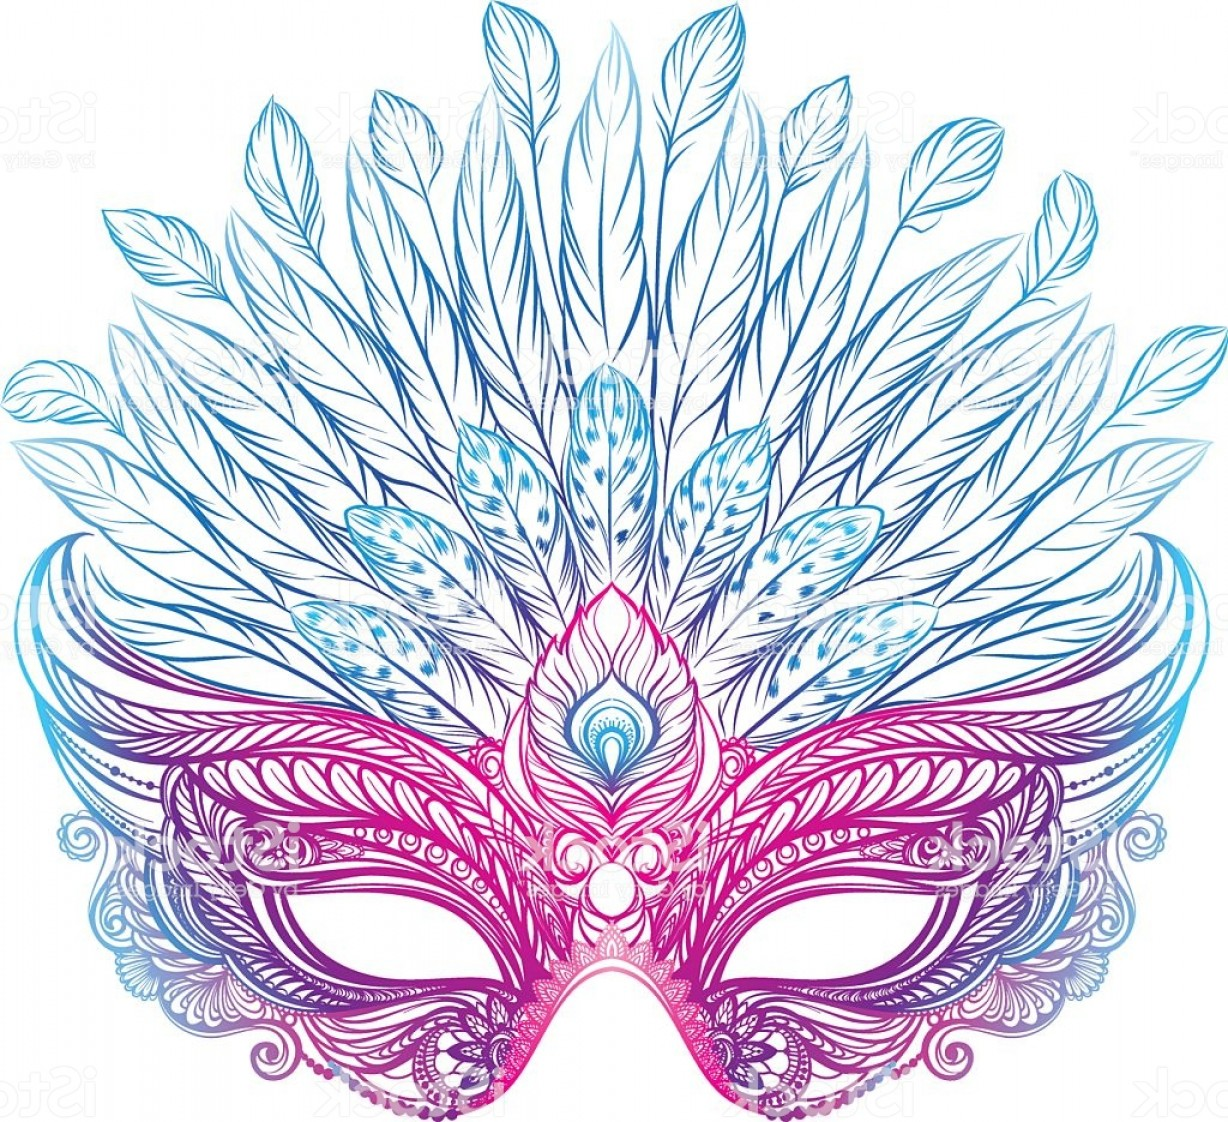 Carnival Vector Feather Art: Beautiful Venetian Carnival Mask With Feathers Gm